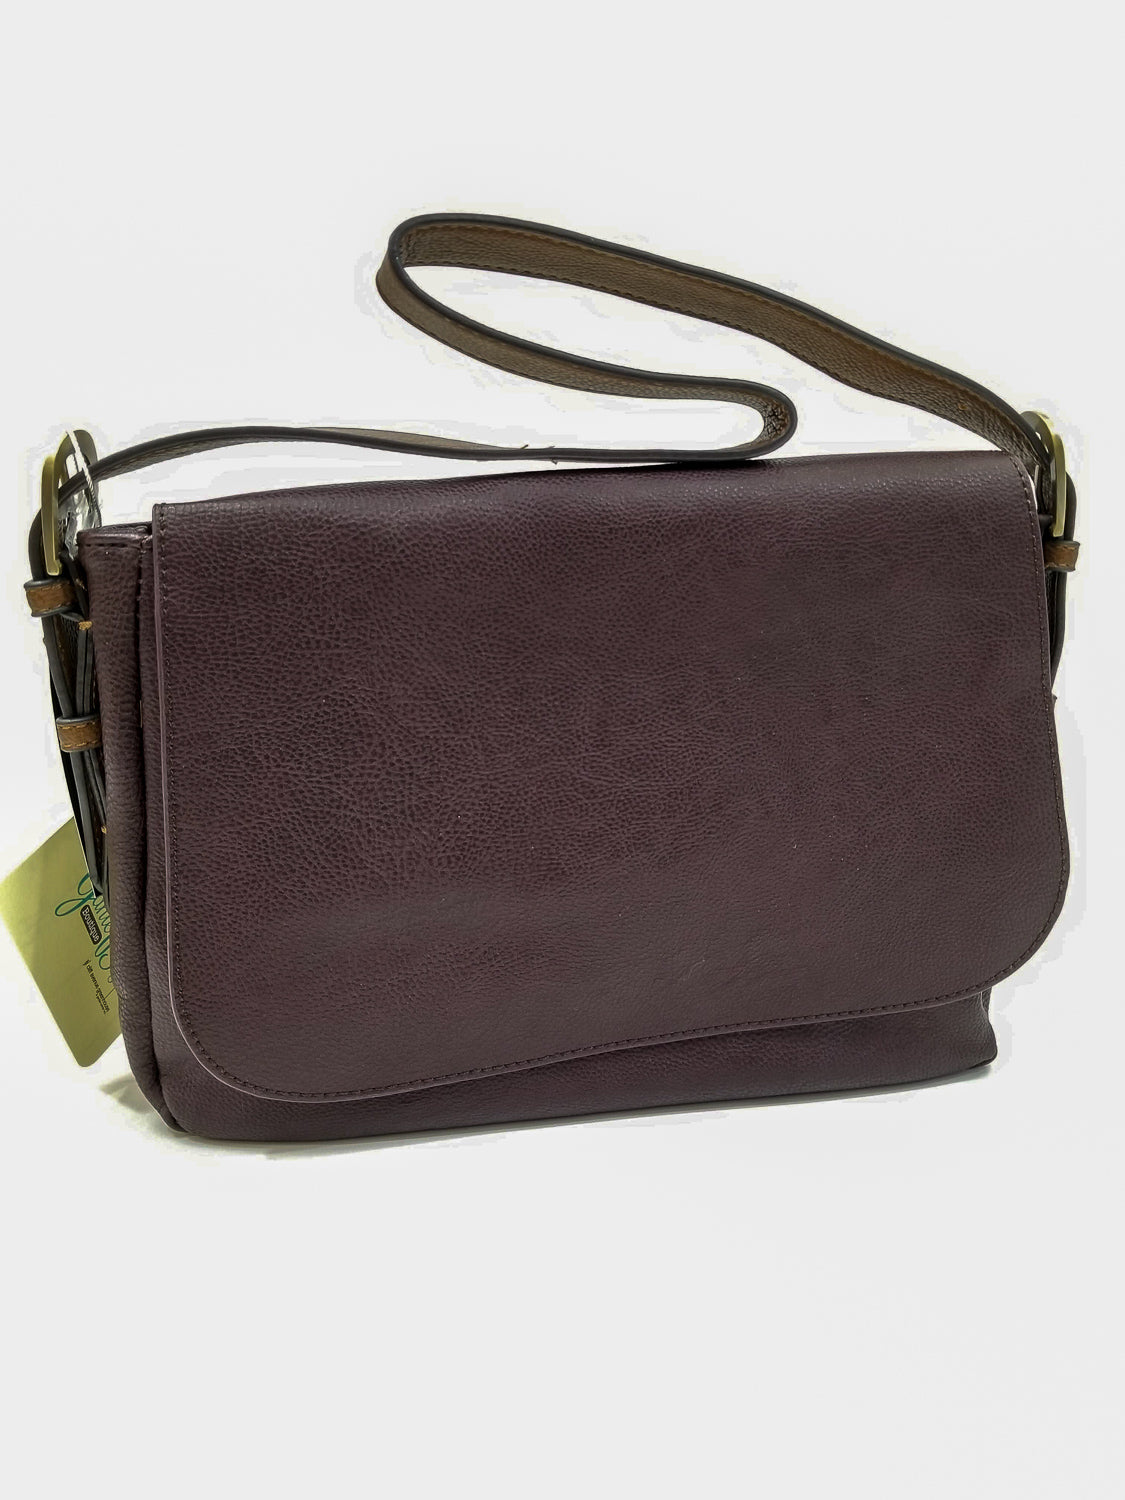 In Line With Style Purse In Eggplant